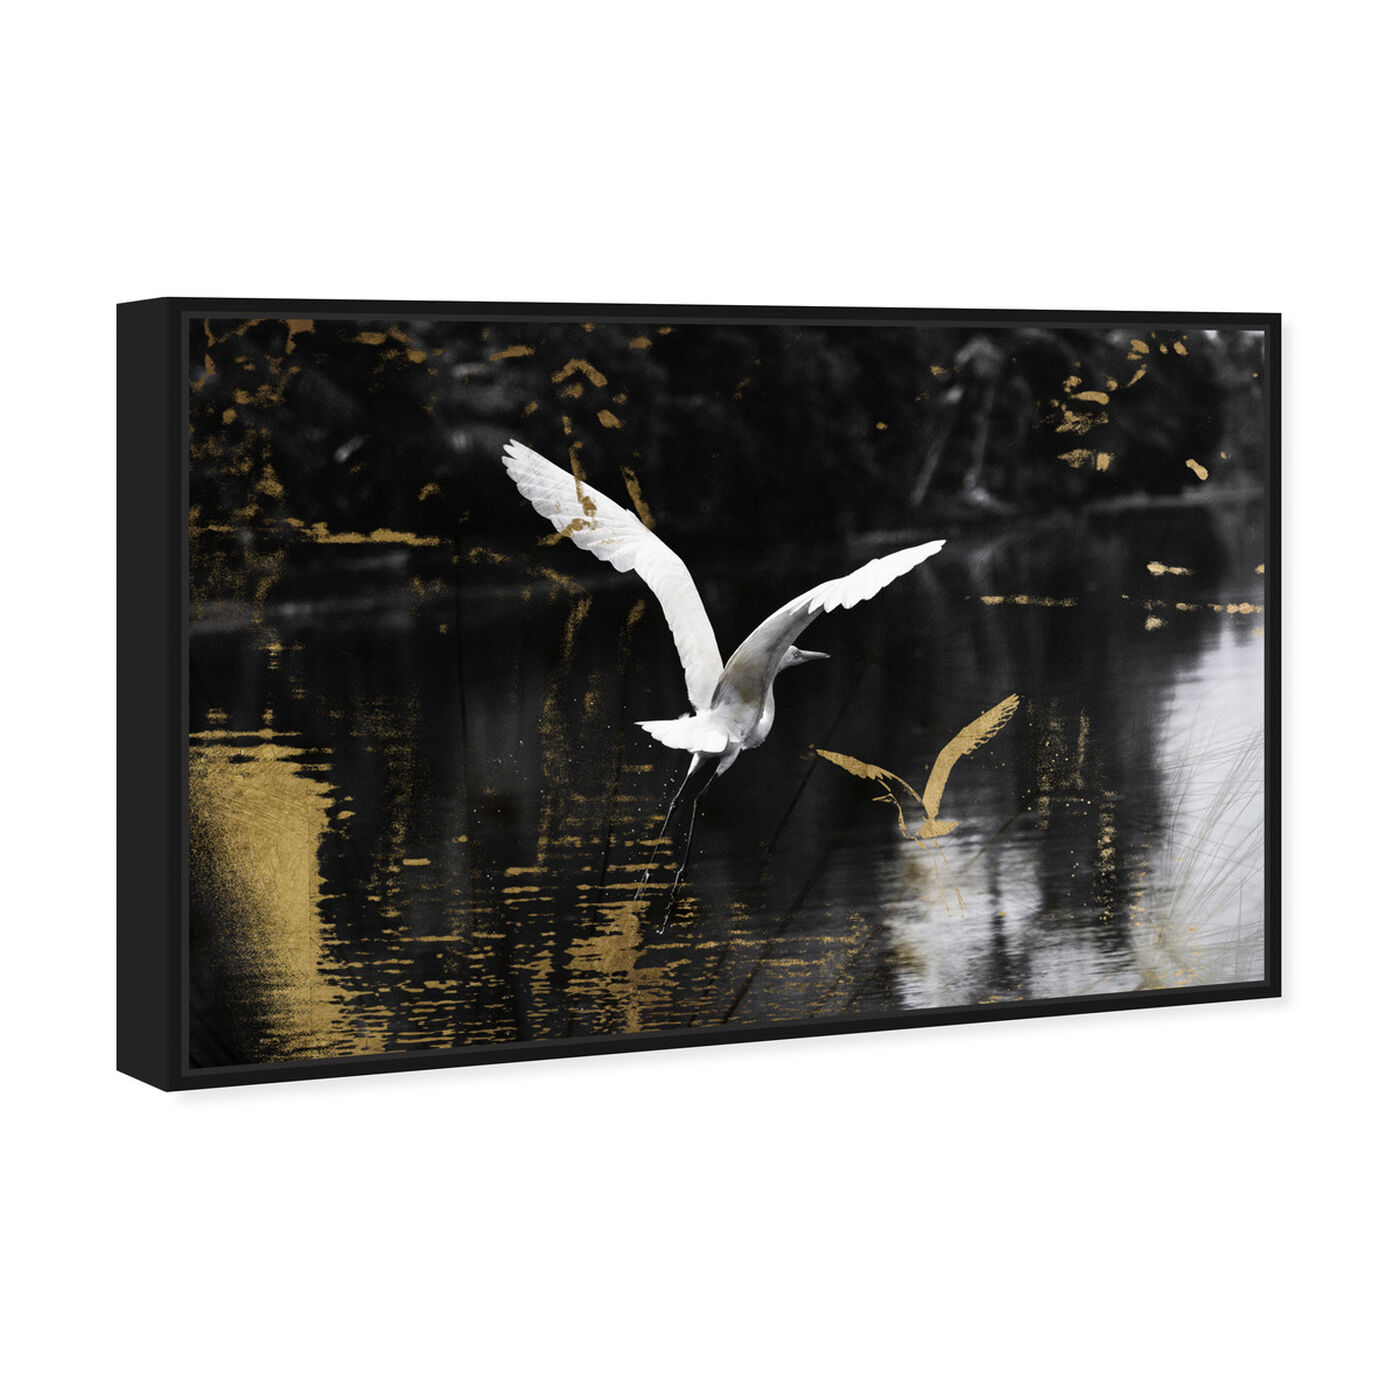 Angled view of Nature in Glam featuring animals and birds art.